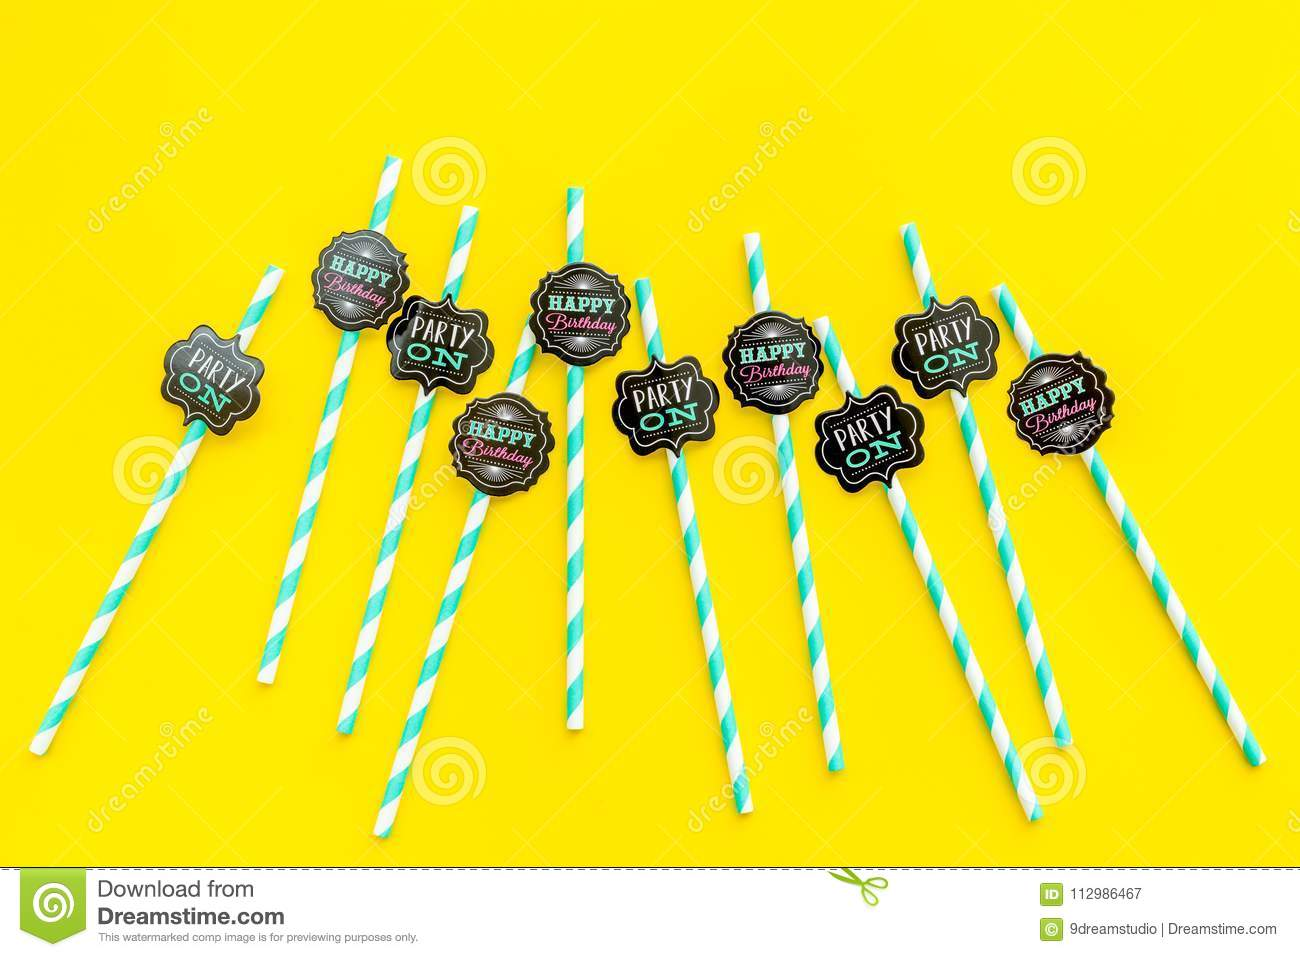 Birthday party background. Lettering Party on and happy birthday on drink straws on yellow top view copy space